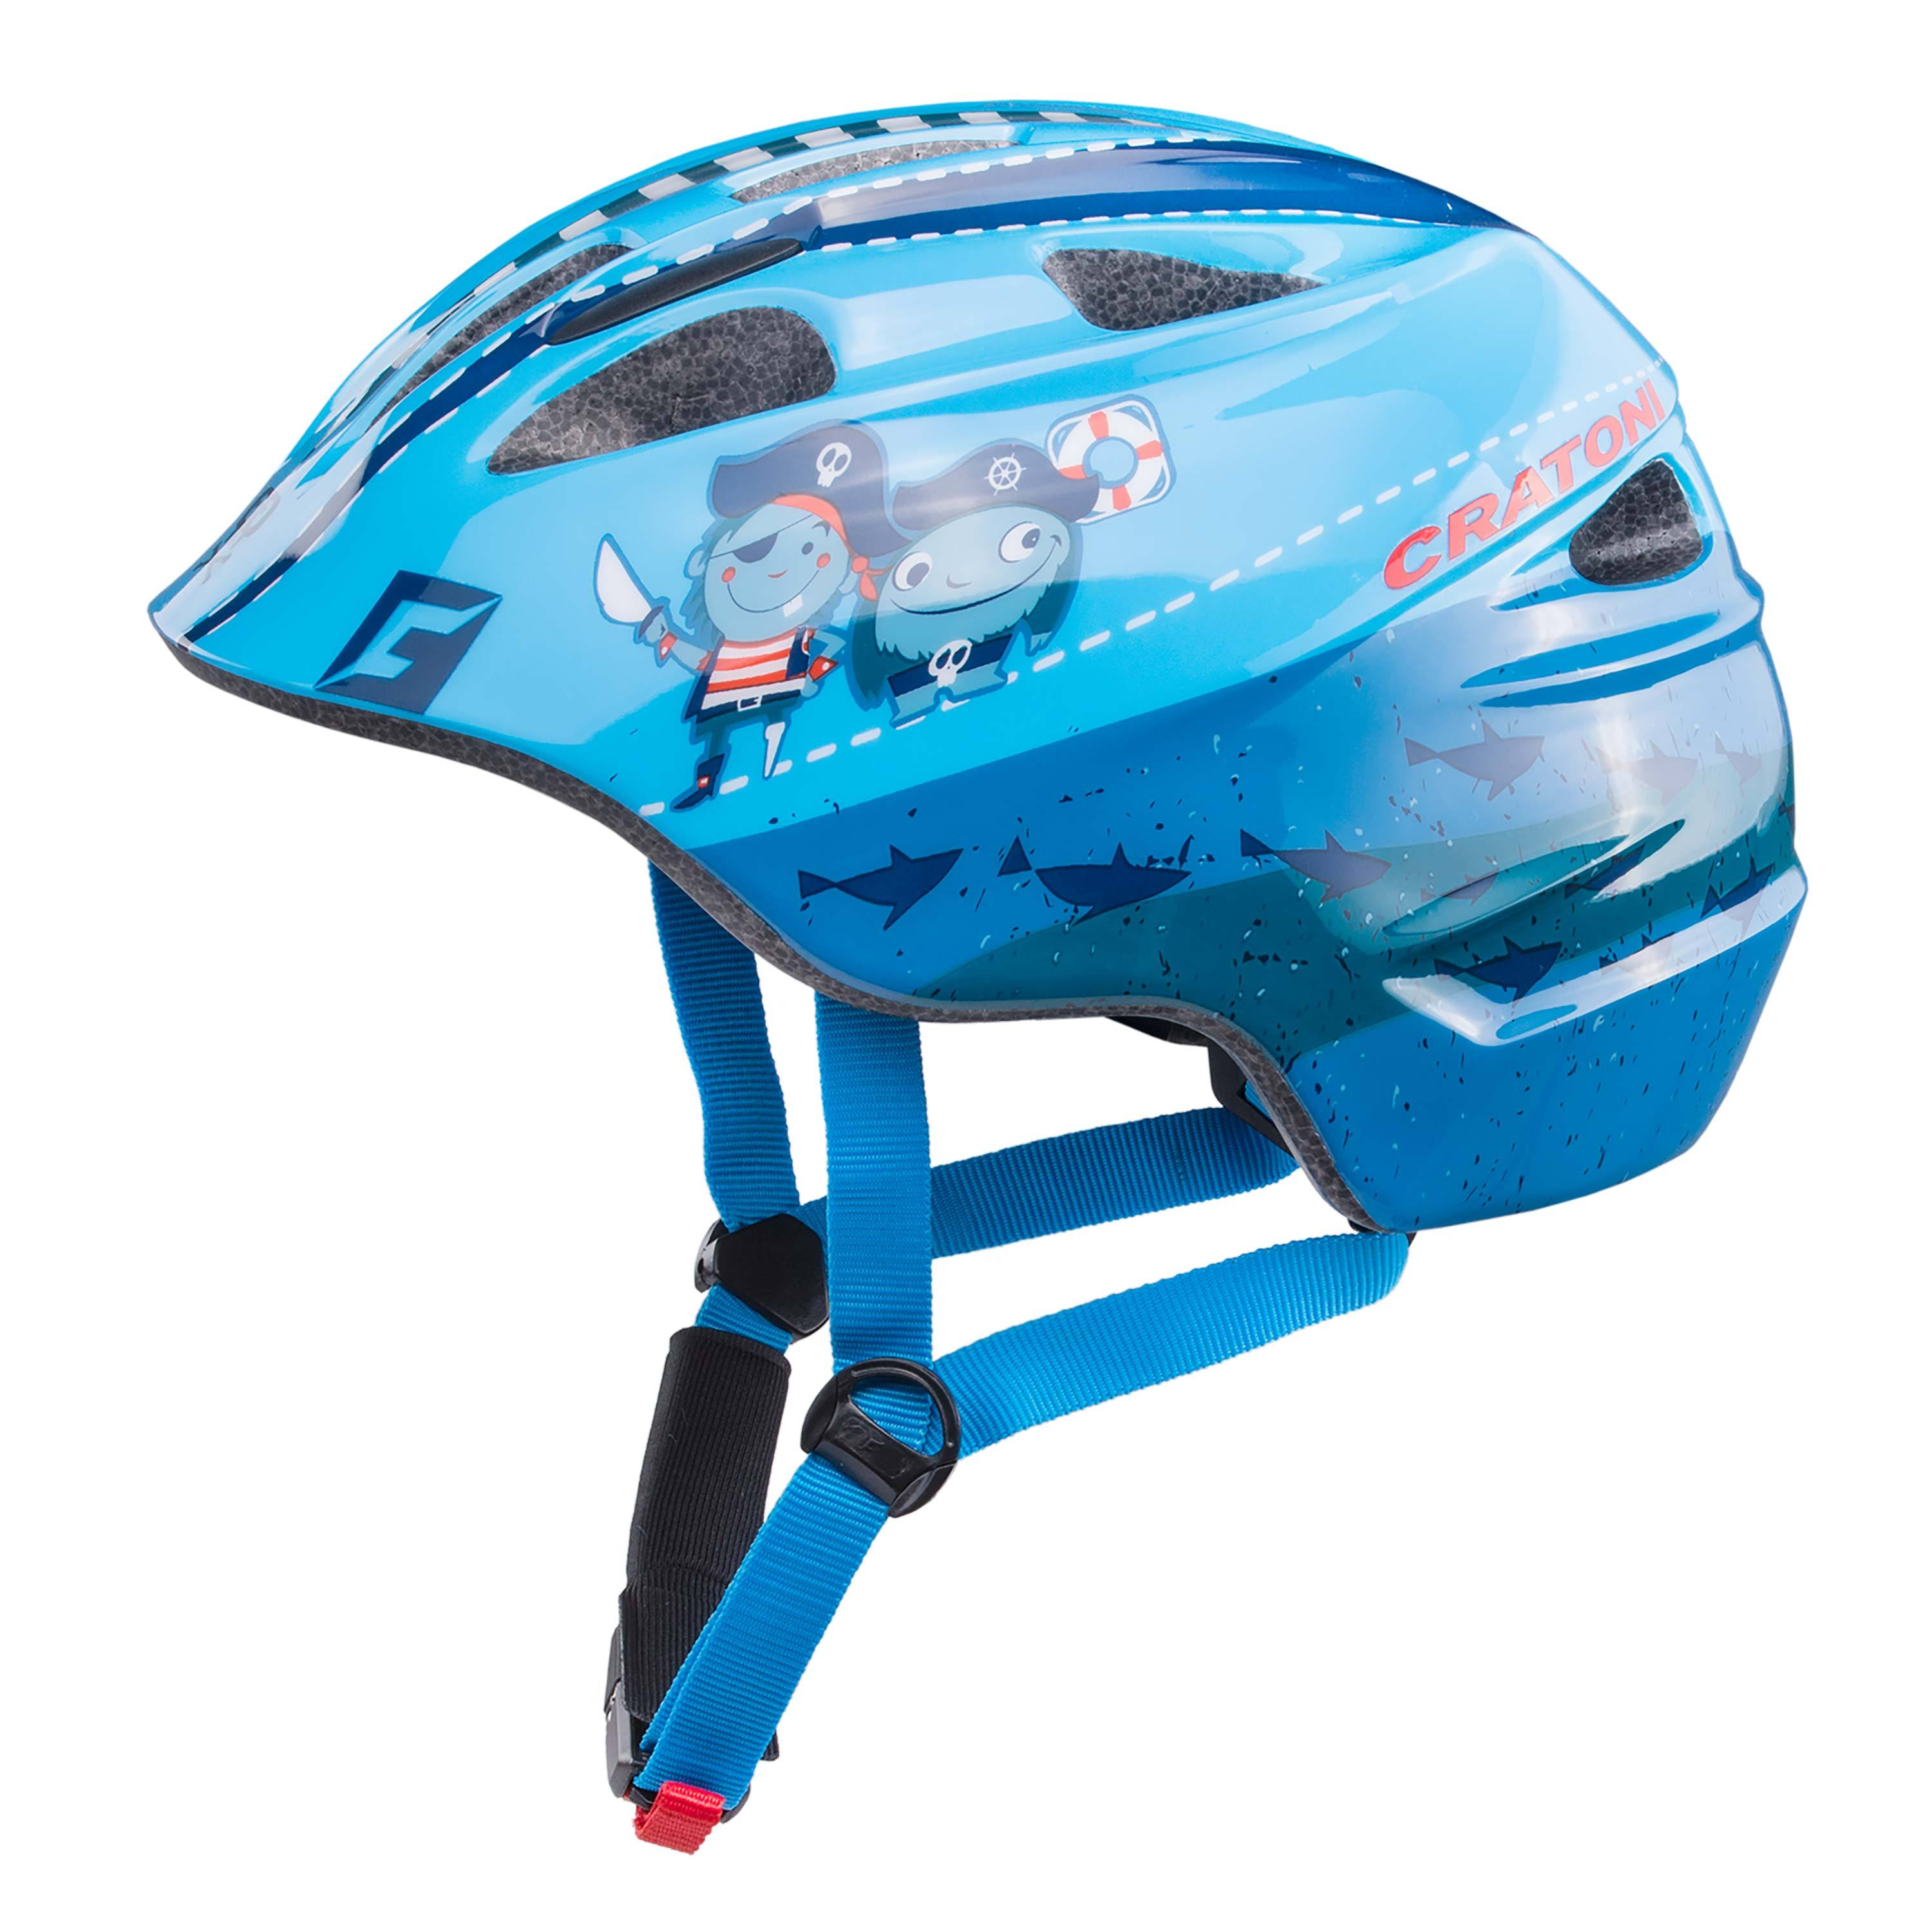 fahrradhelm f r kinder cratoni akino kinderfahrradhelm mit tollen motiven ebay. Black Bedroom Furniture Sets. Home Design Ideas